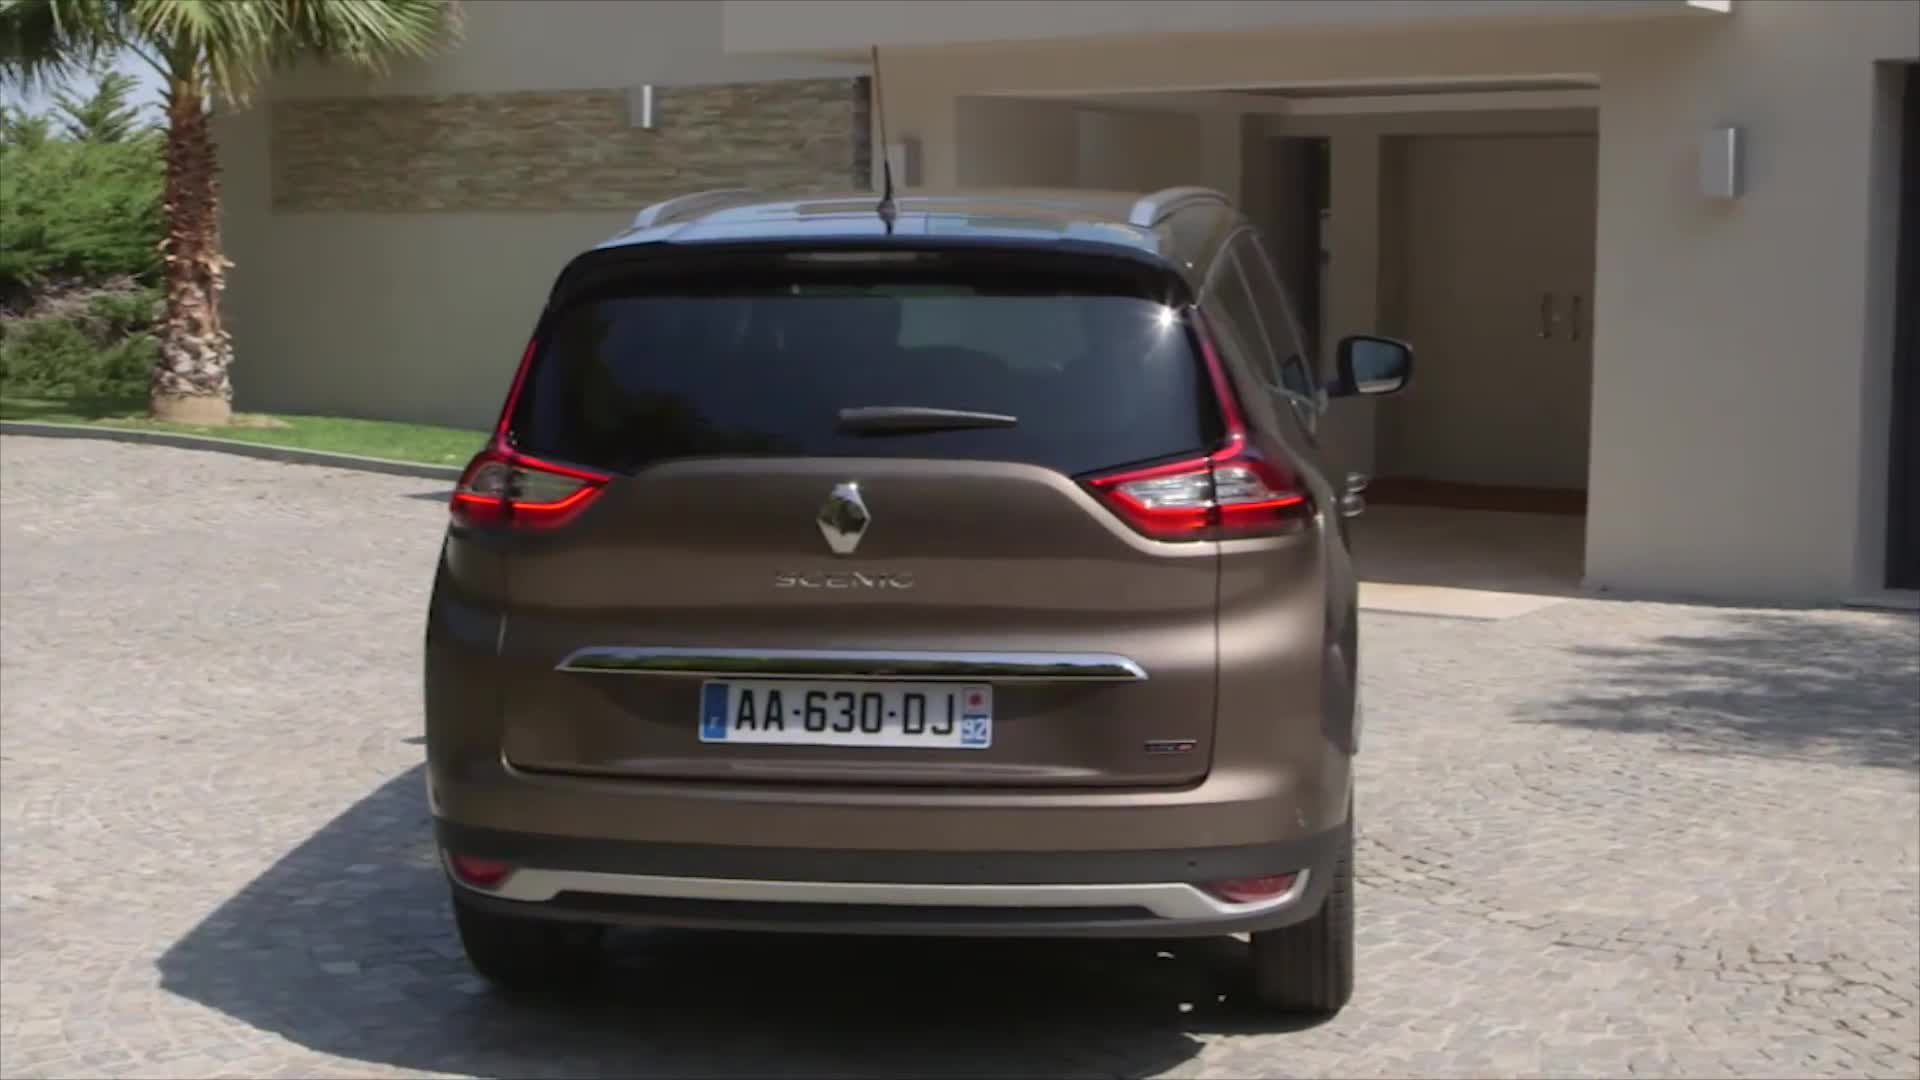 New 2016 Renault GRAND SCENIC - Exterior